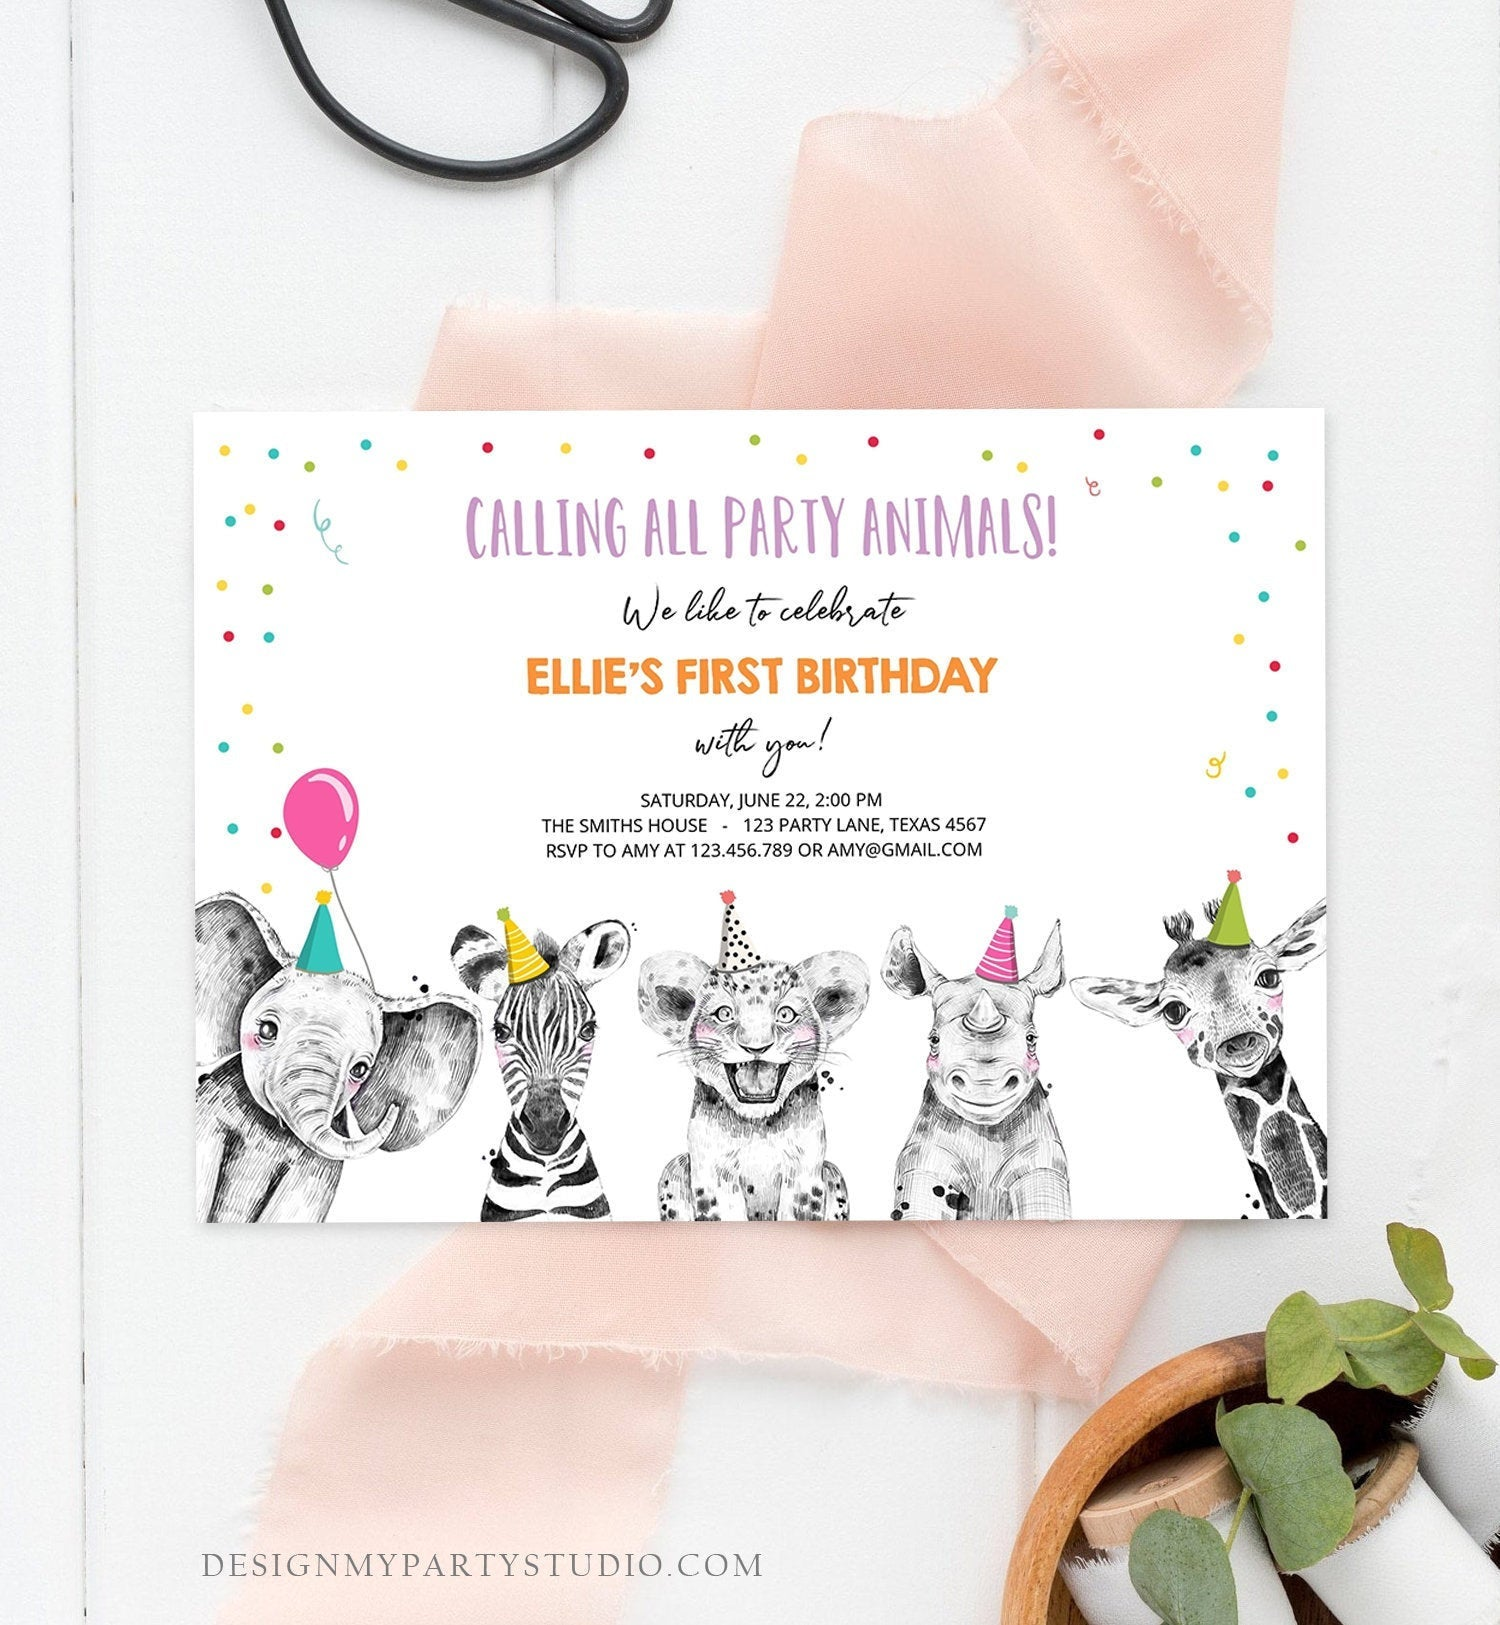 Editable Party Animals Birthday Invitation Wild One Animals Invitation Zoo Safari Animals Girl Download Printable Invite Template Corjl 0322